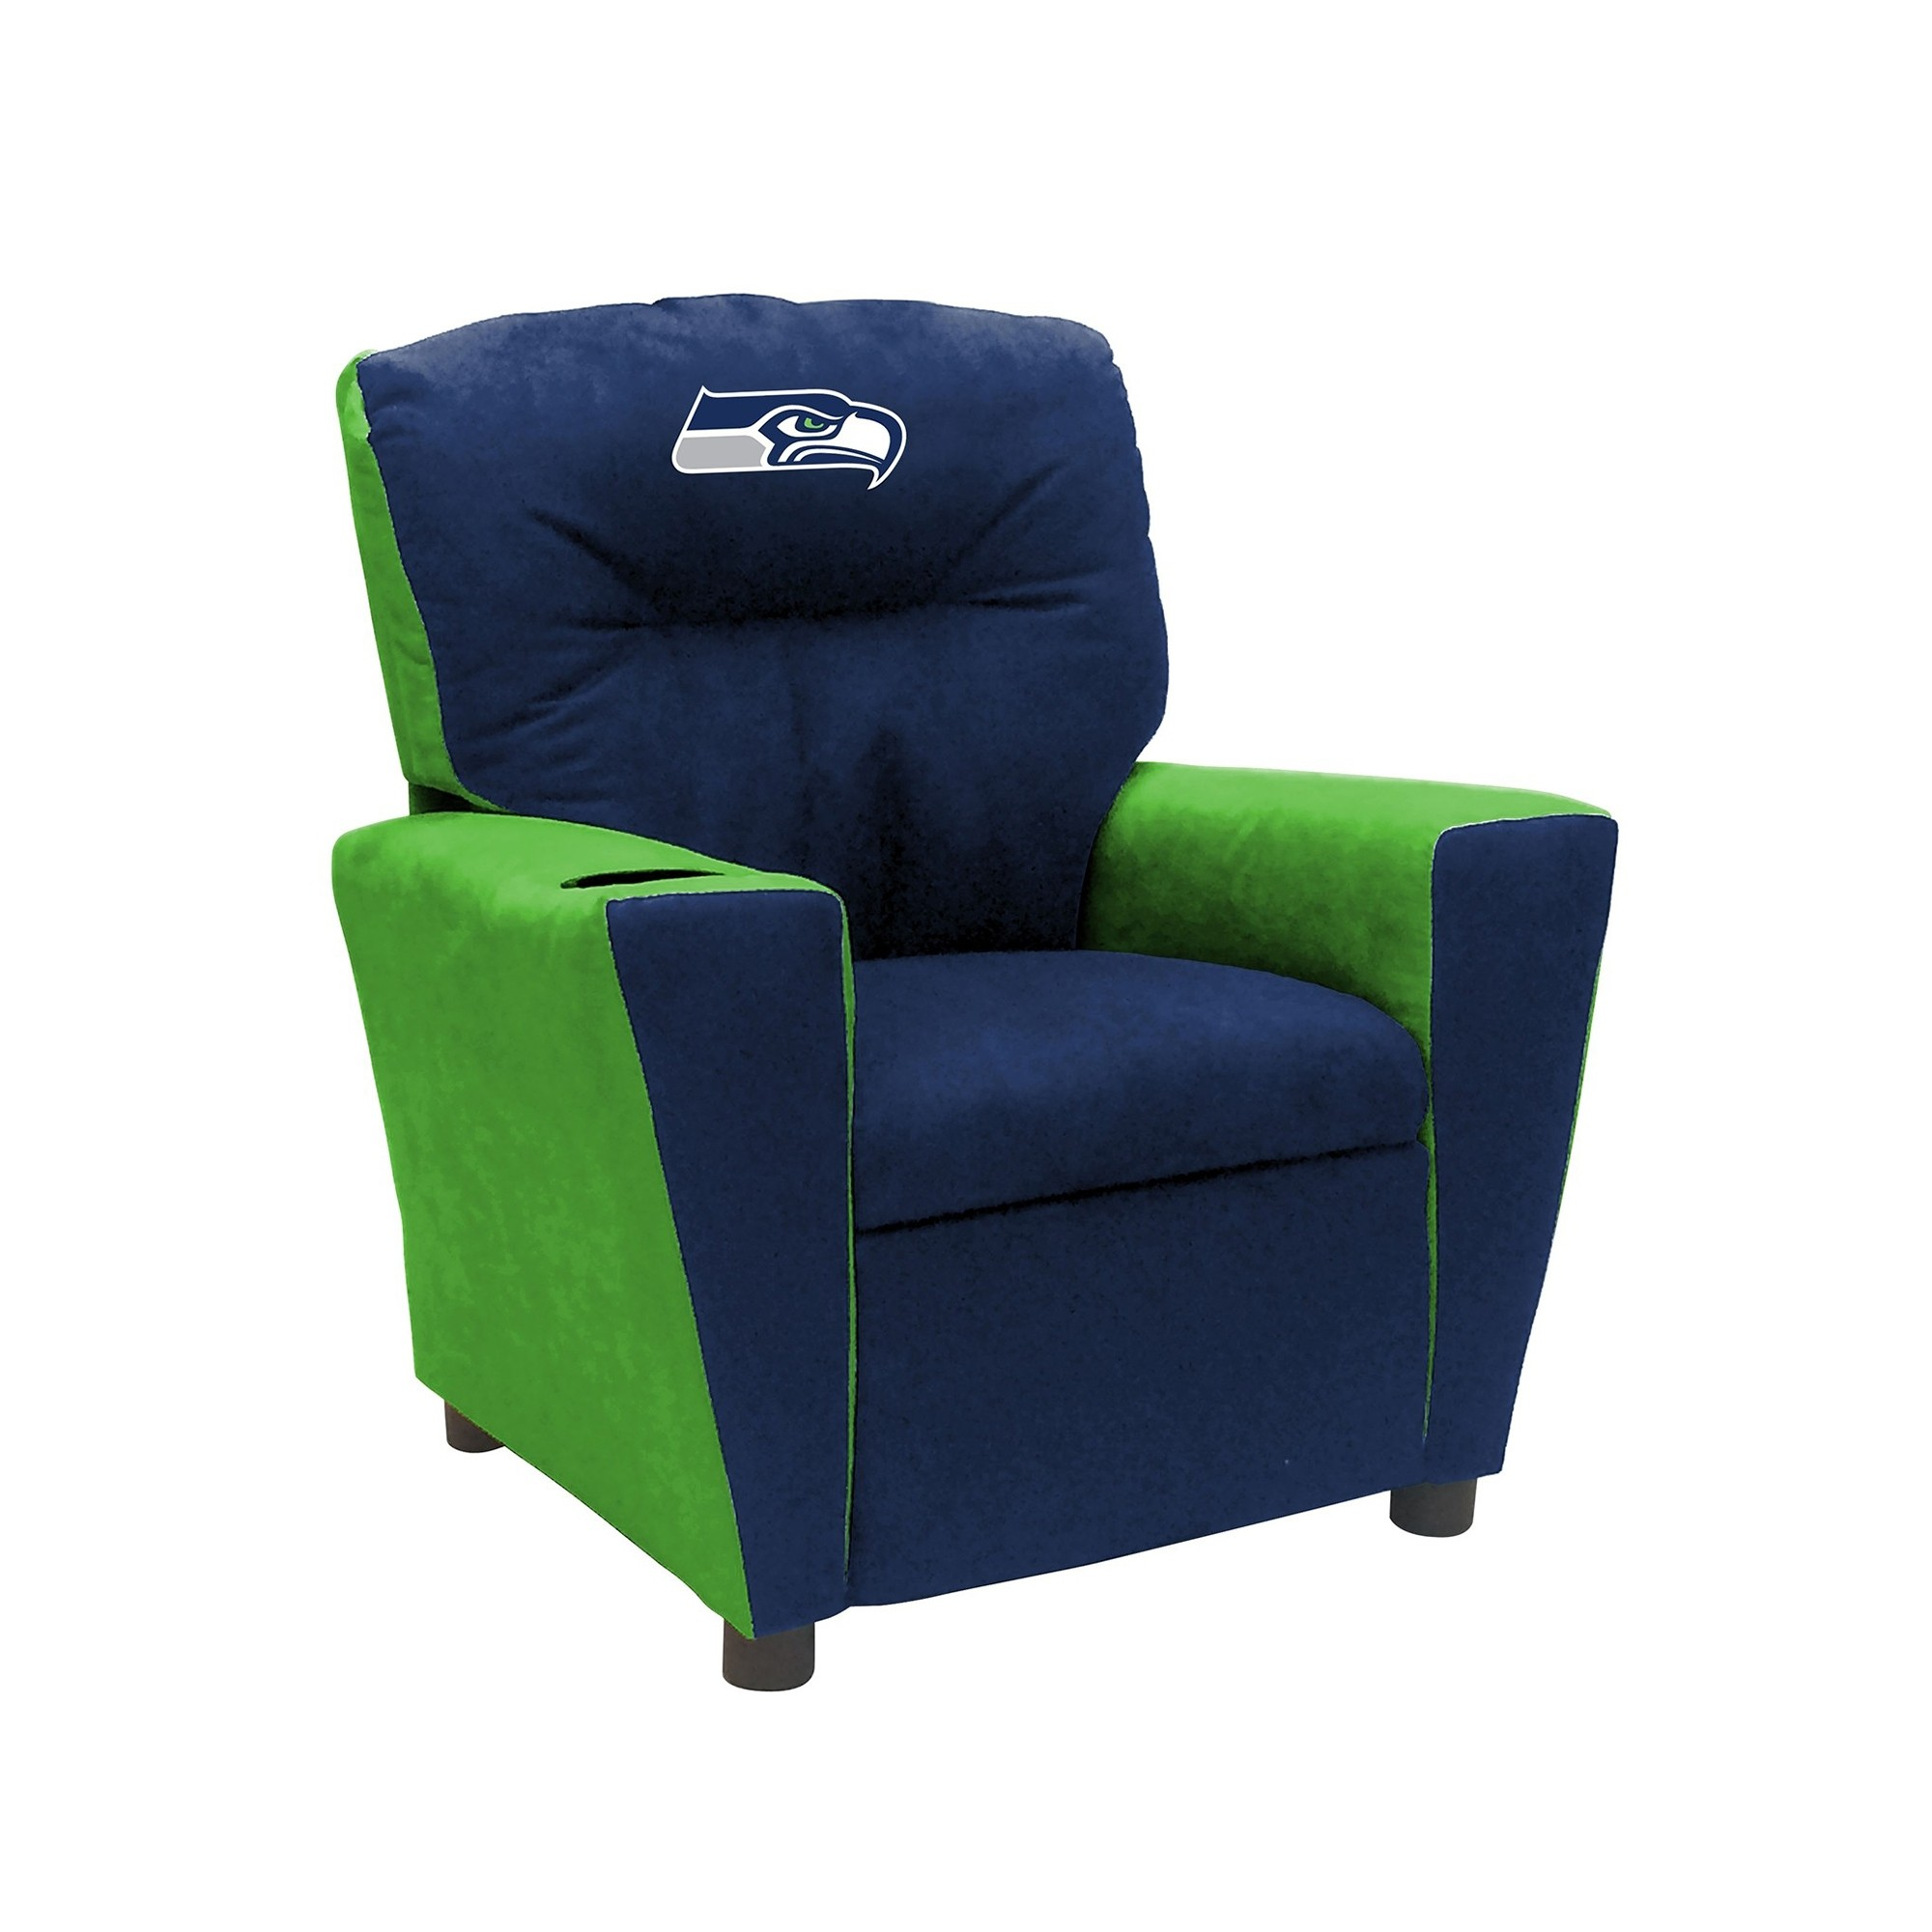 Seattle Seahawks Fan Favorite Recliner; Kids - 122-1024 - Football Nfl Football Seattle Seahawks Kids Dish Sets 122-1024